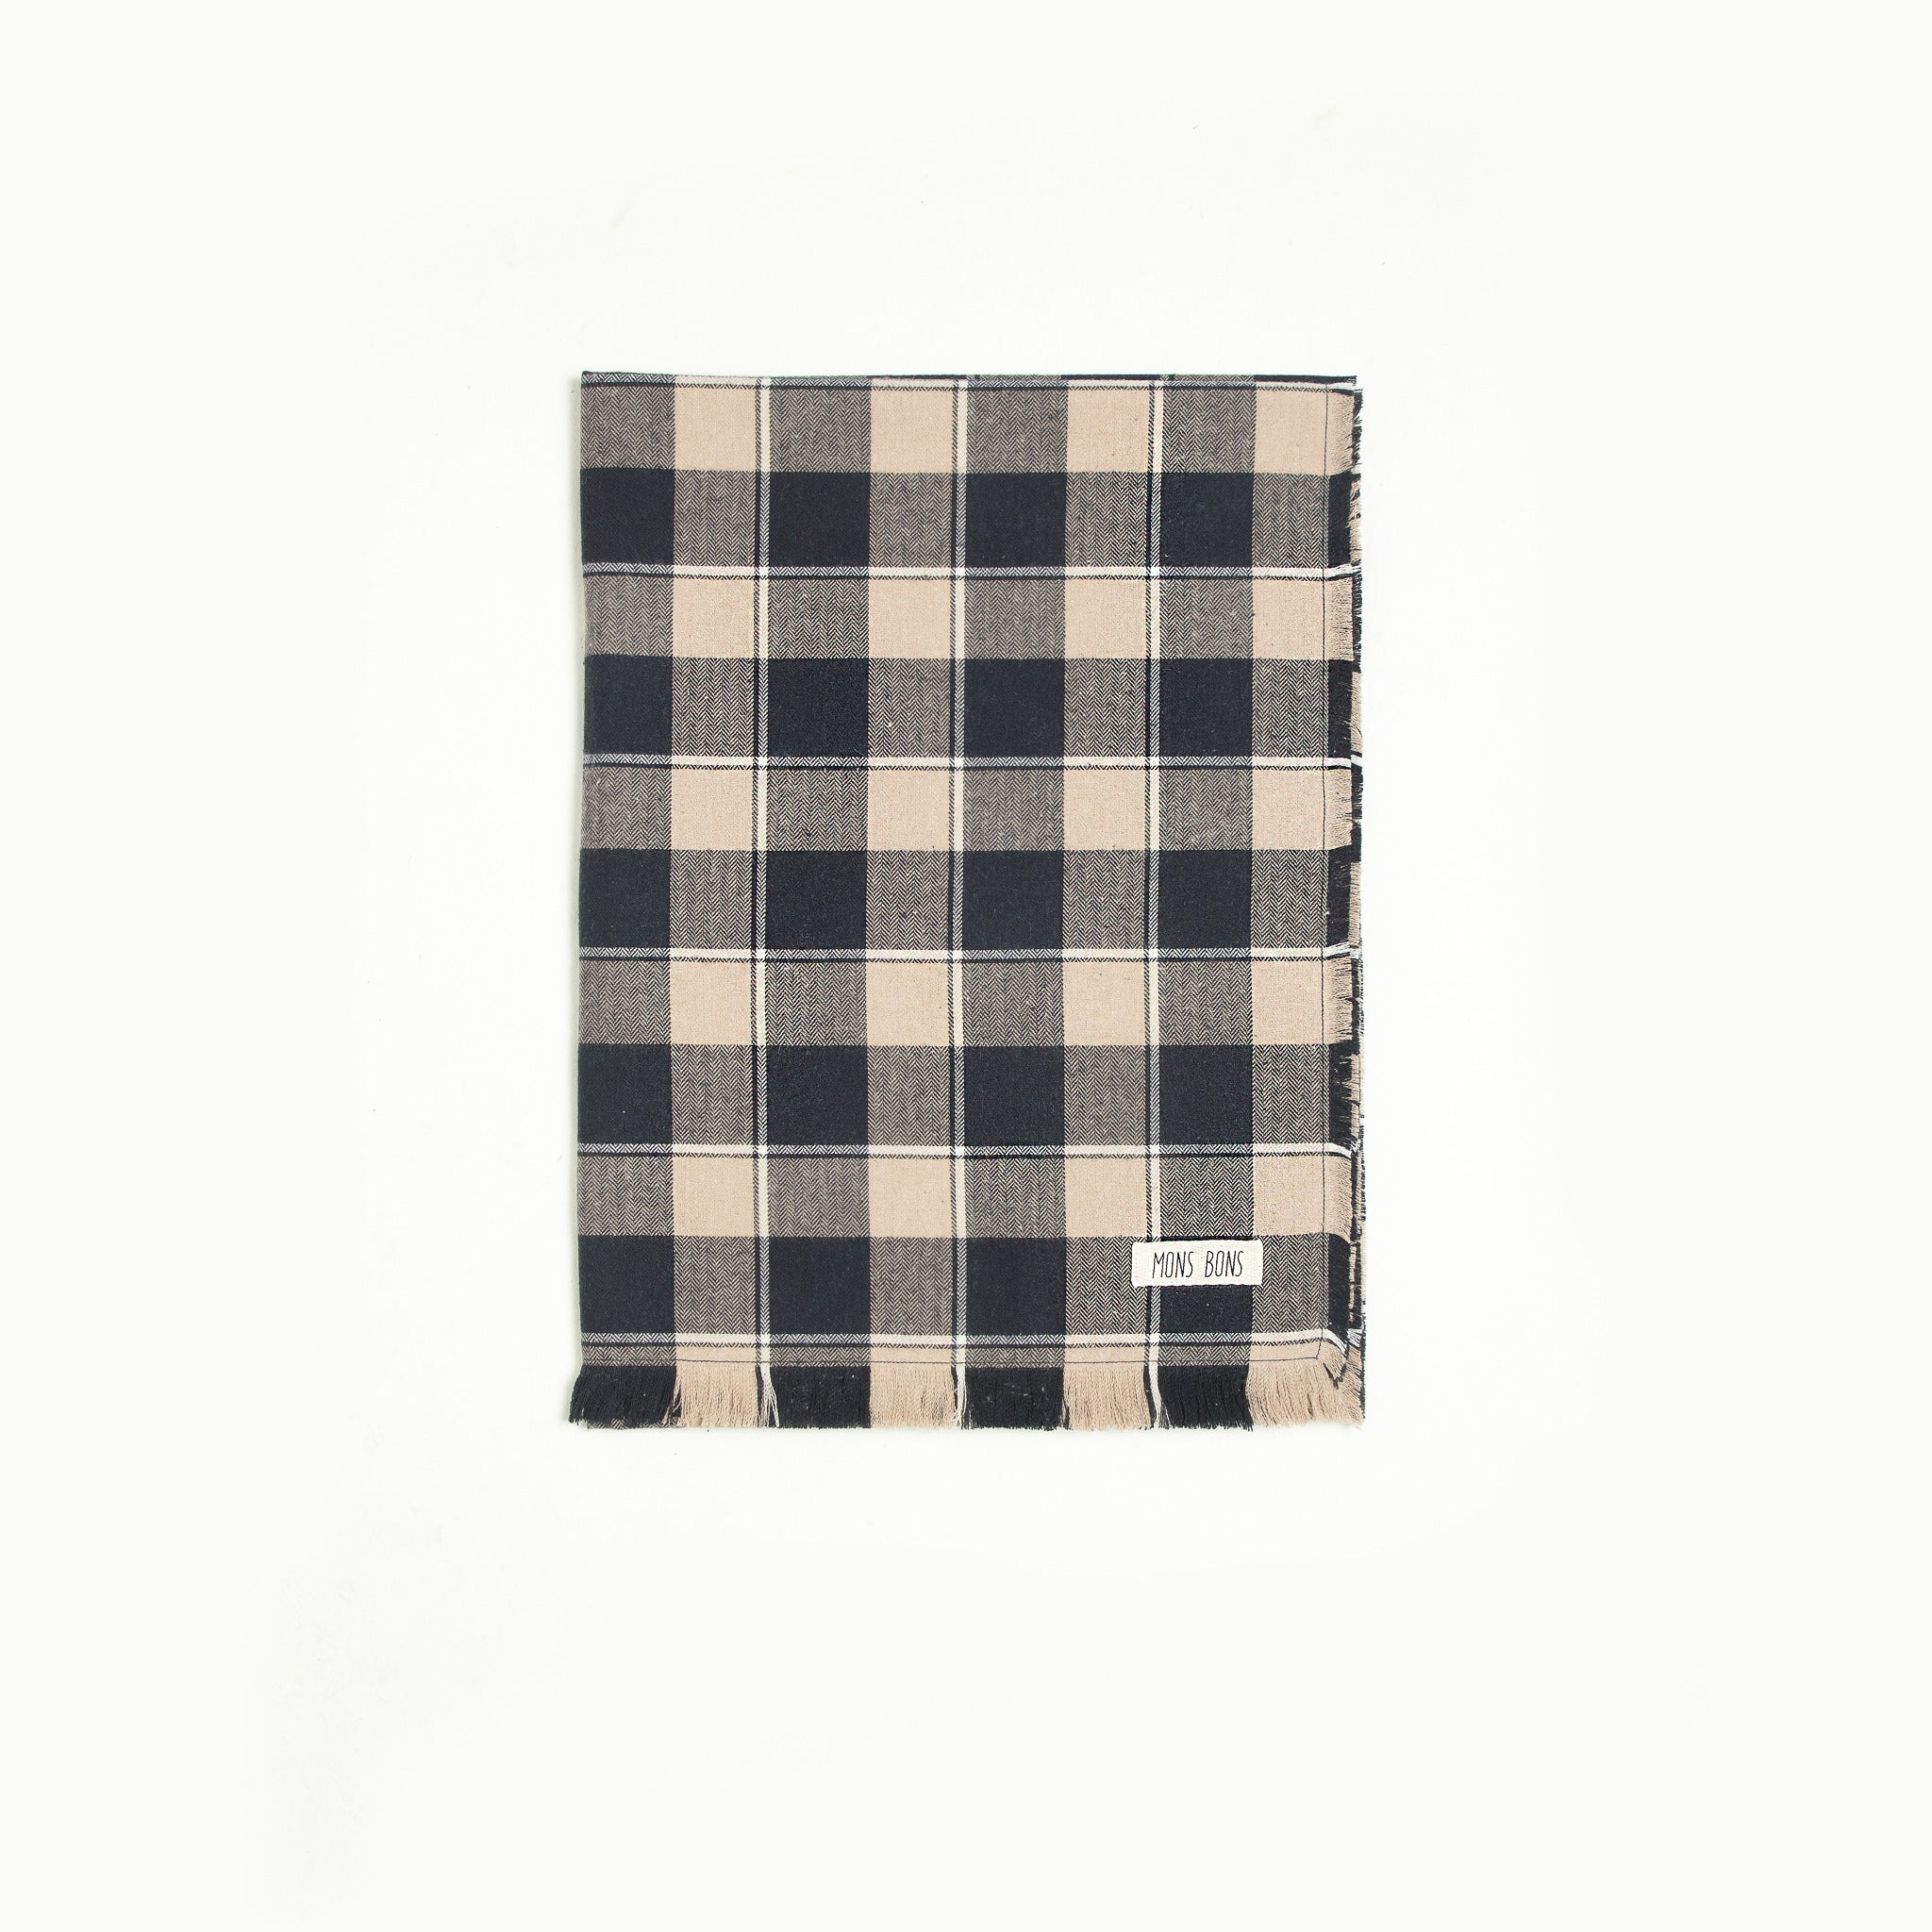 Plaid Scarf - MONS BONS